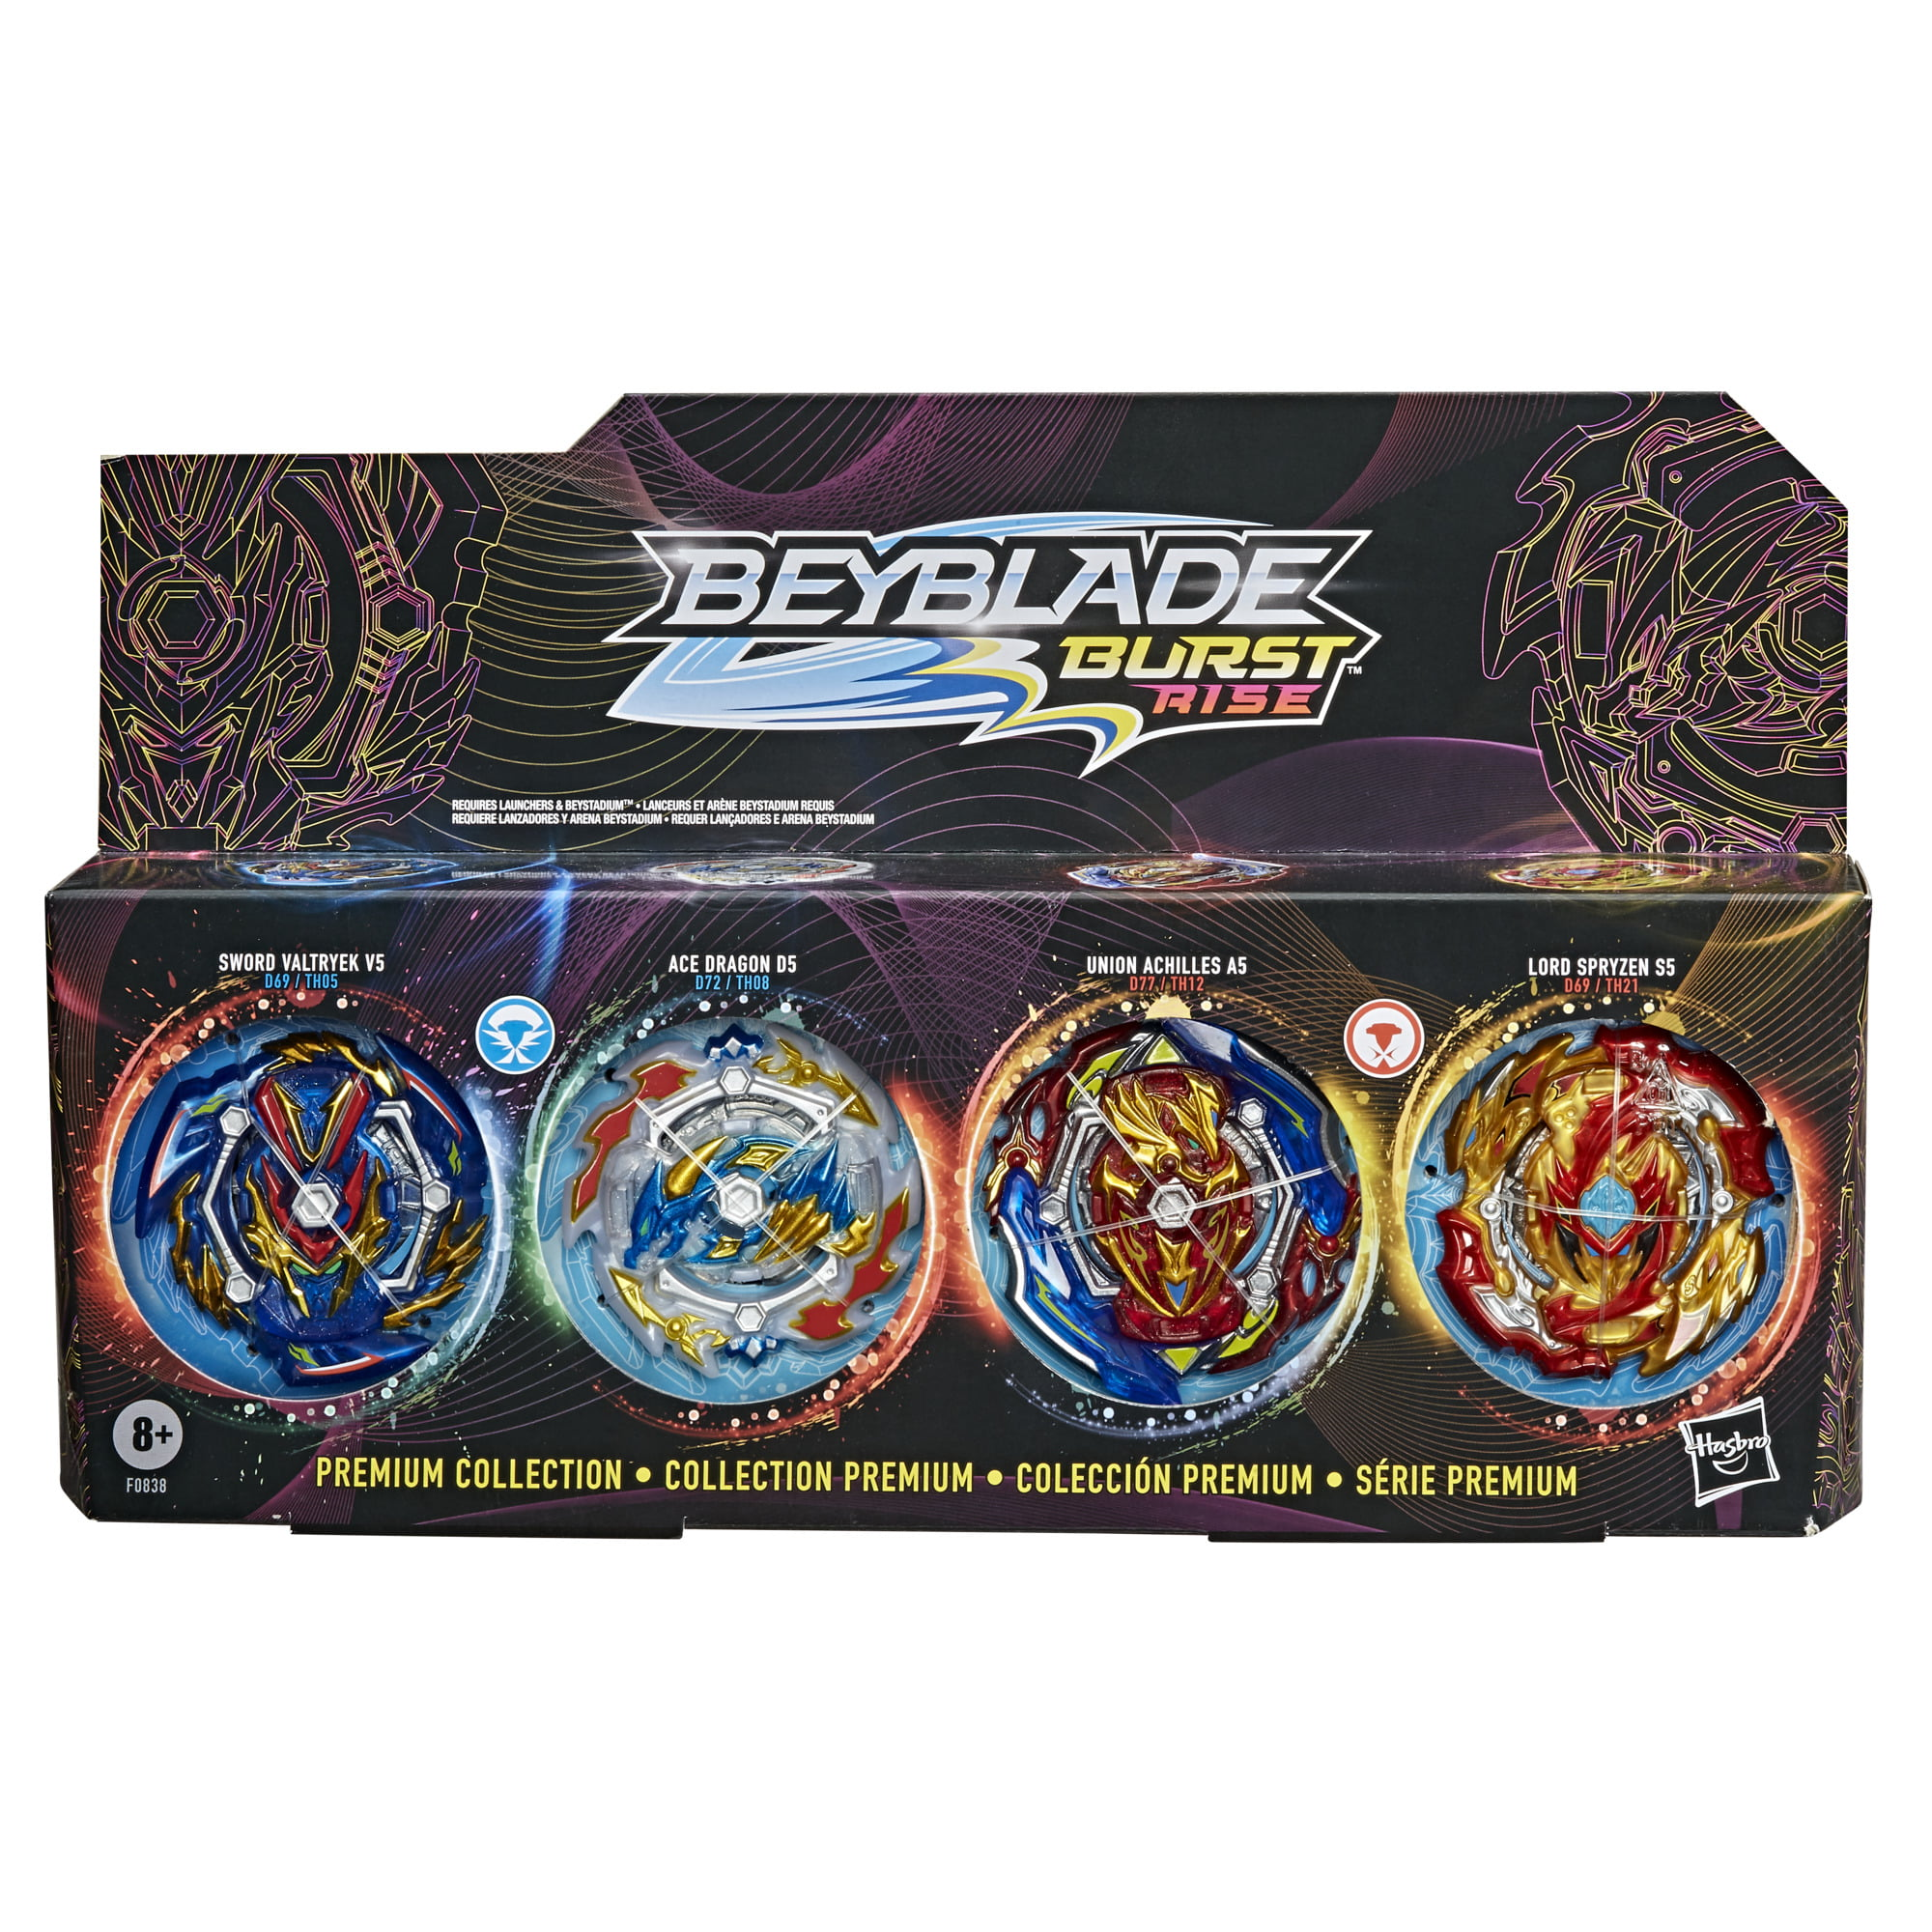 only at walmart beyblade burst rise hypersphere premium collection walmart com walmart com only at walmart beyblade burst rise hypersphere premium collection